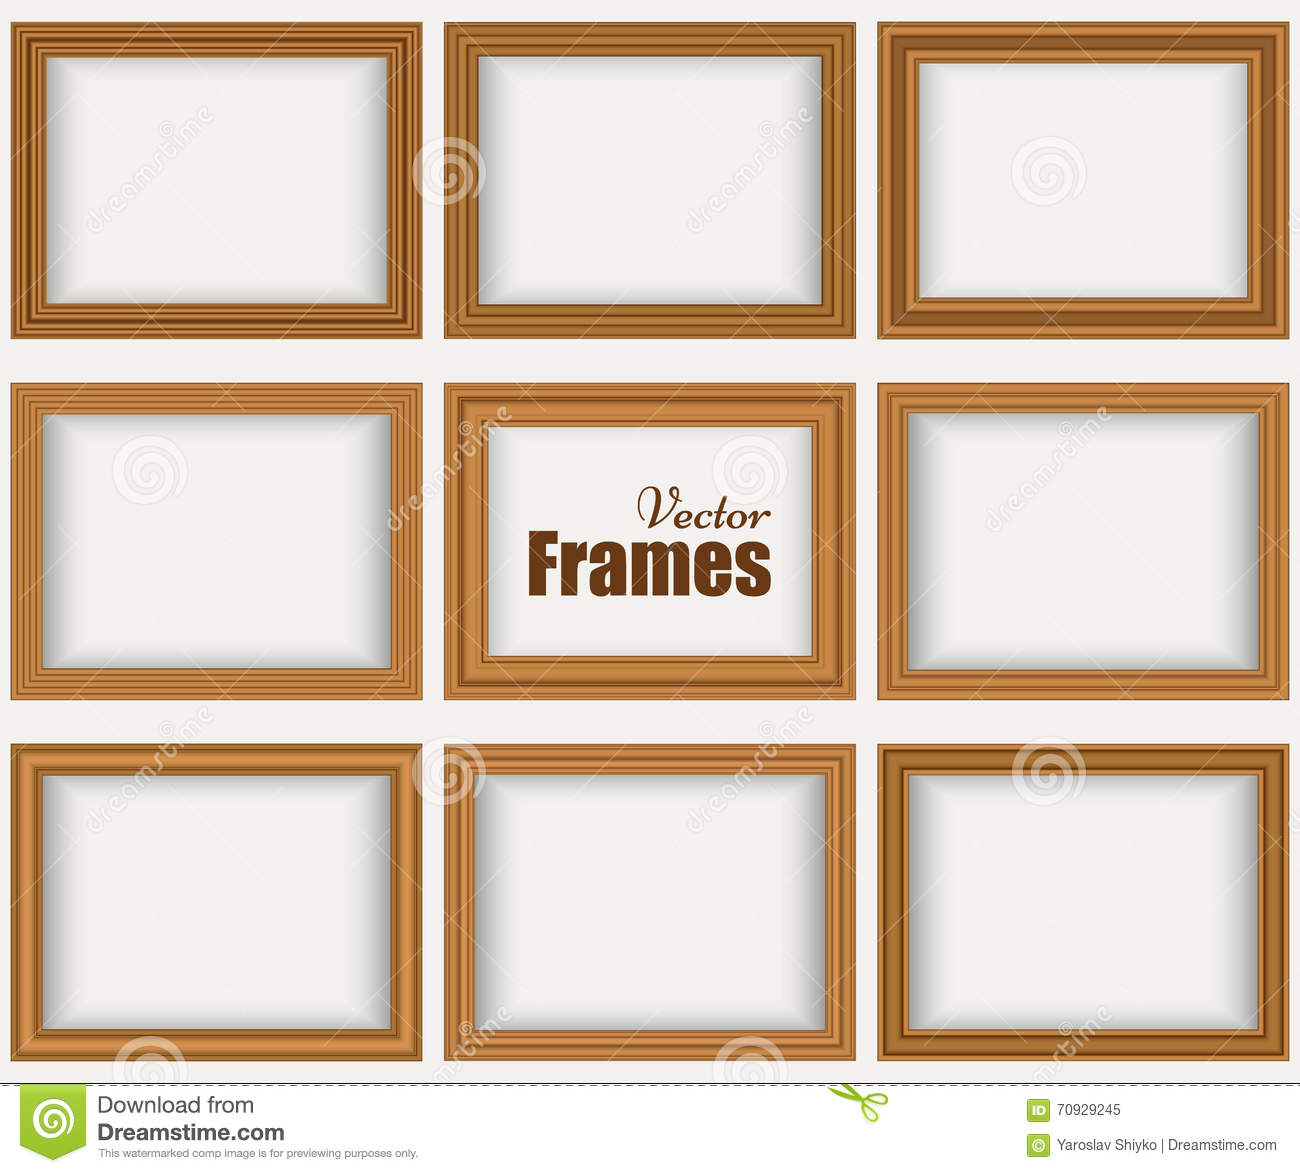 Wood frames set free vector - Royalty Free Vector Frames Illustration Isolated Realistic Set